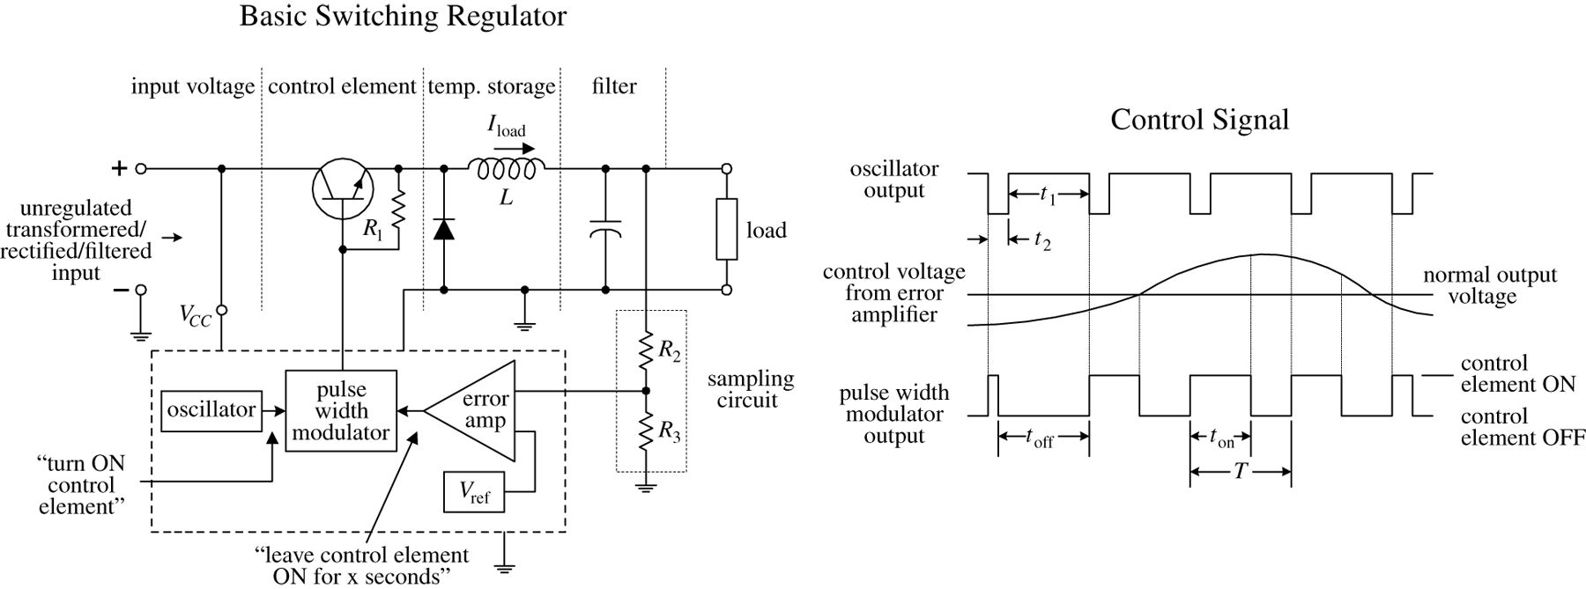 Voltage Regulators And Power Supplies Practical Electronics For Alternate Positivevoltage Switching Regulator Circuit Diagram Control Element A Switcher Incorporates Regulation System In Which The Is Switched On Off Very Rapidly